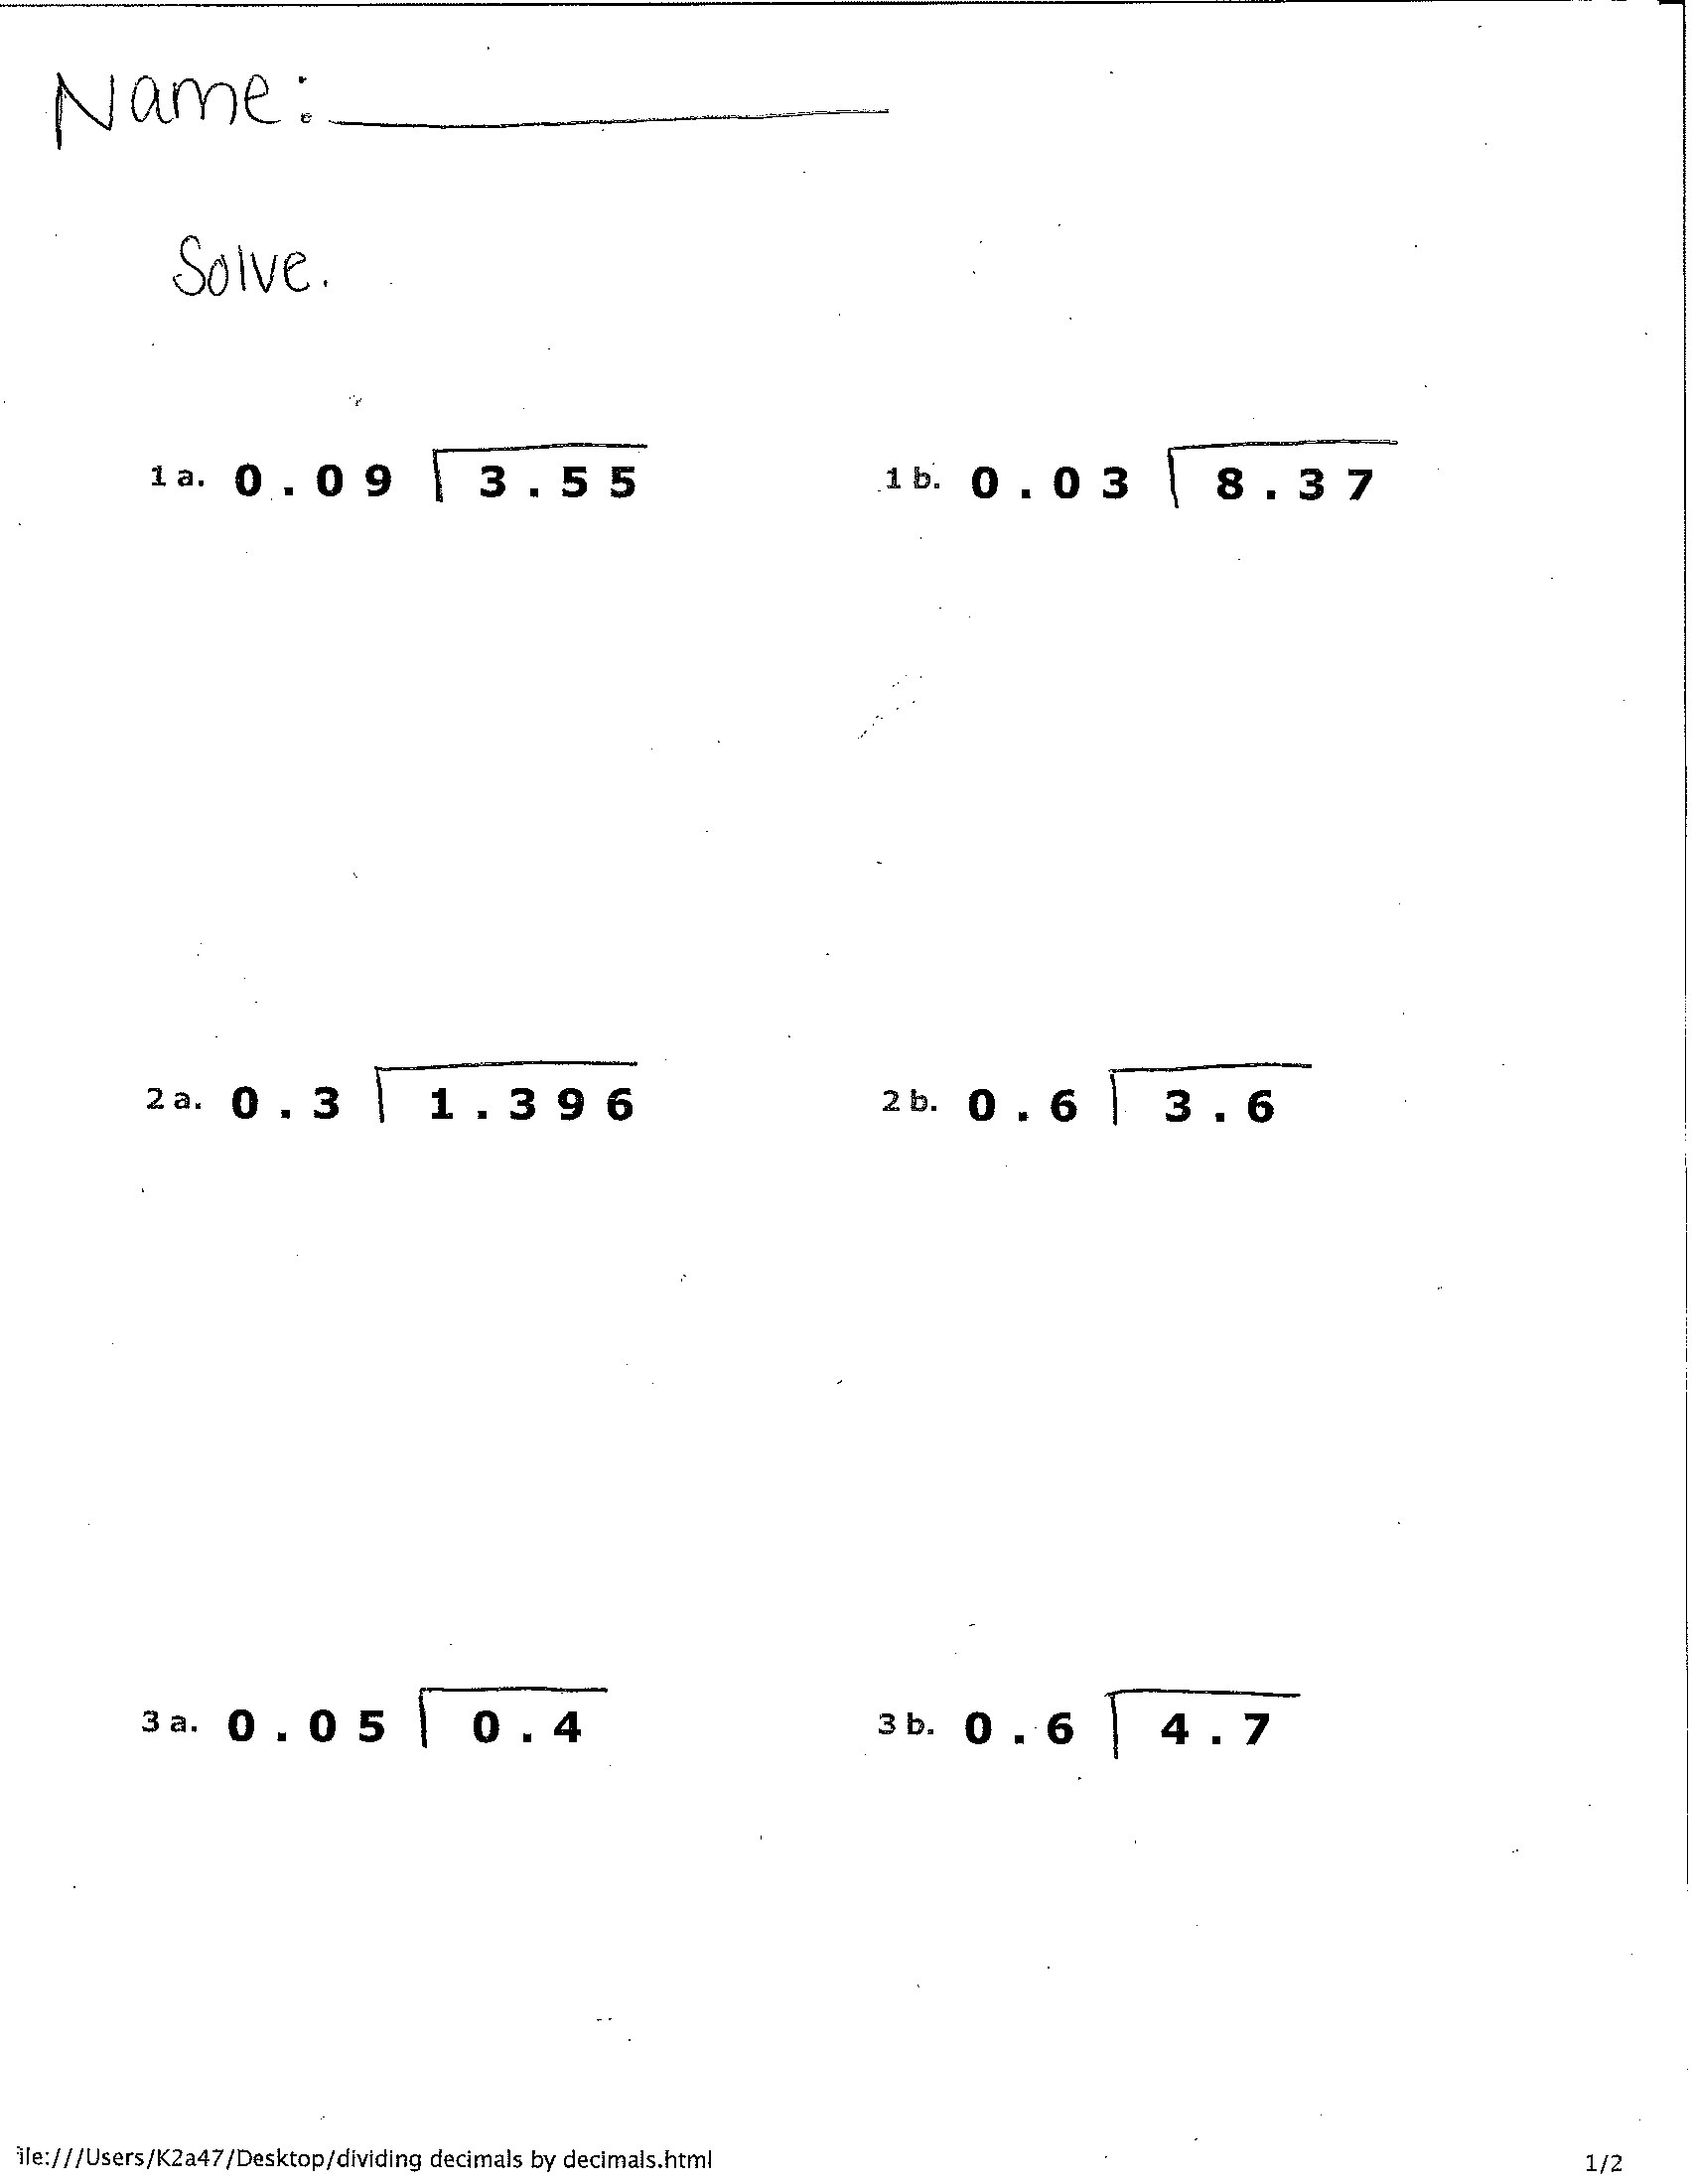 Worksheet Decimal Division division of decimals worksheet davezan dividing with answers davezan